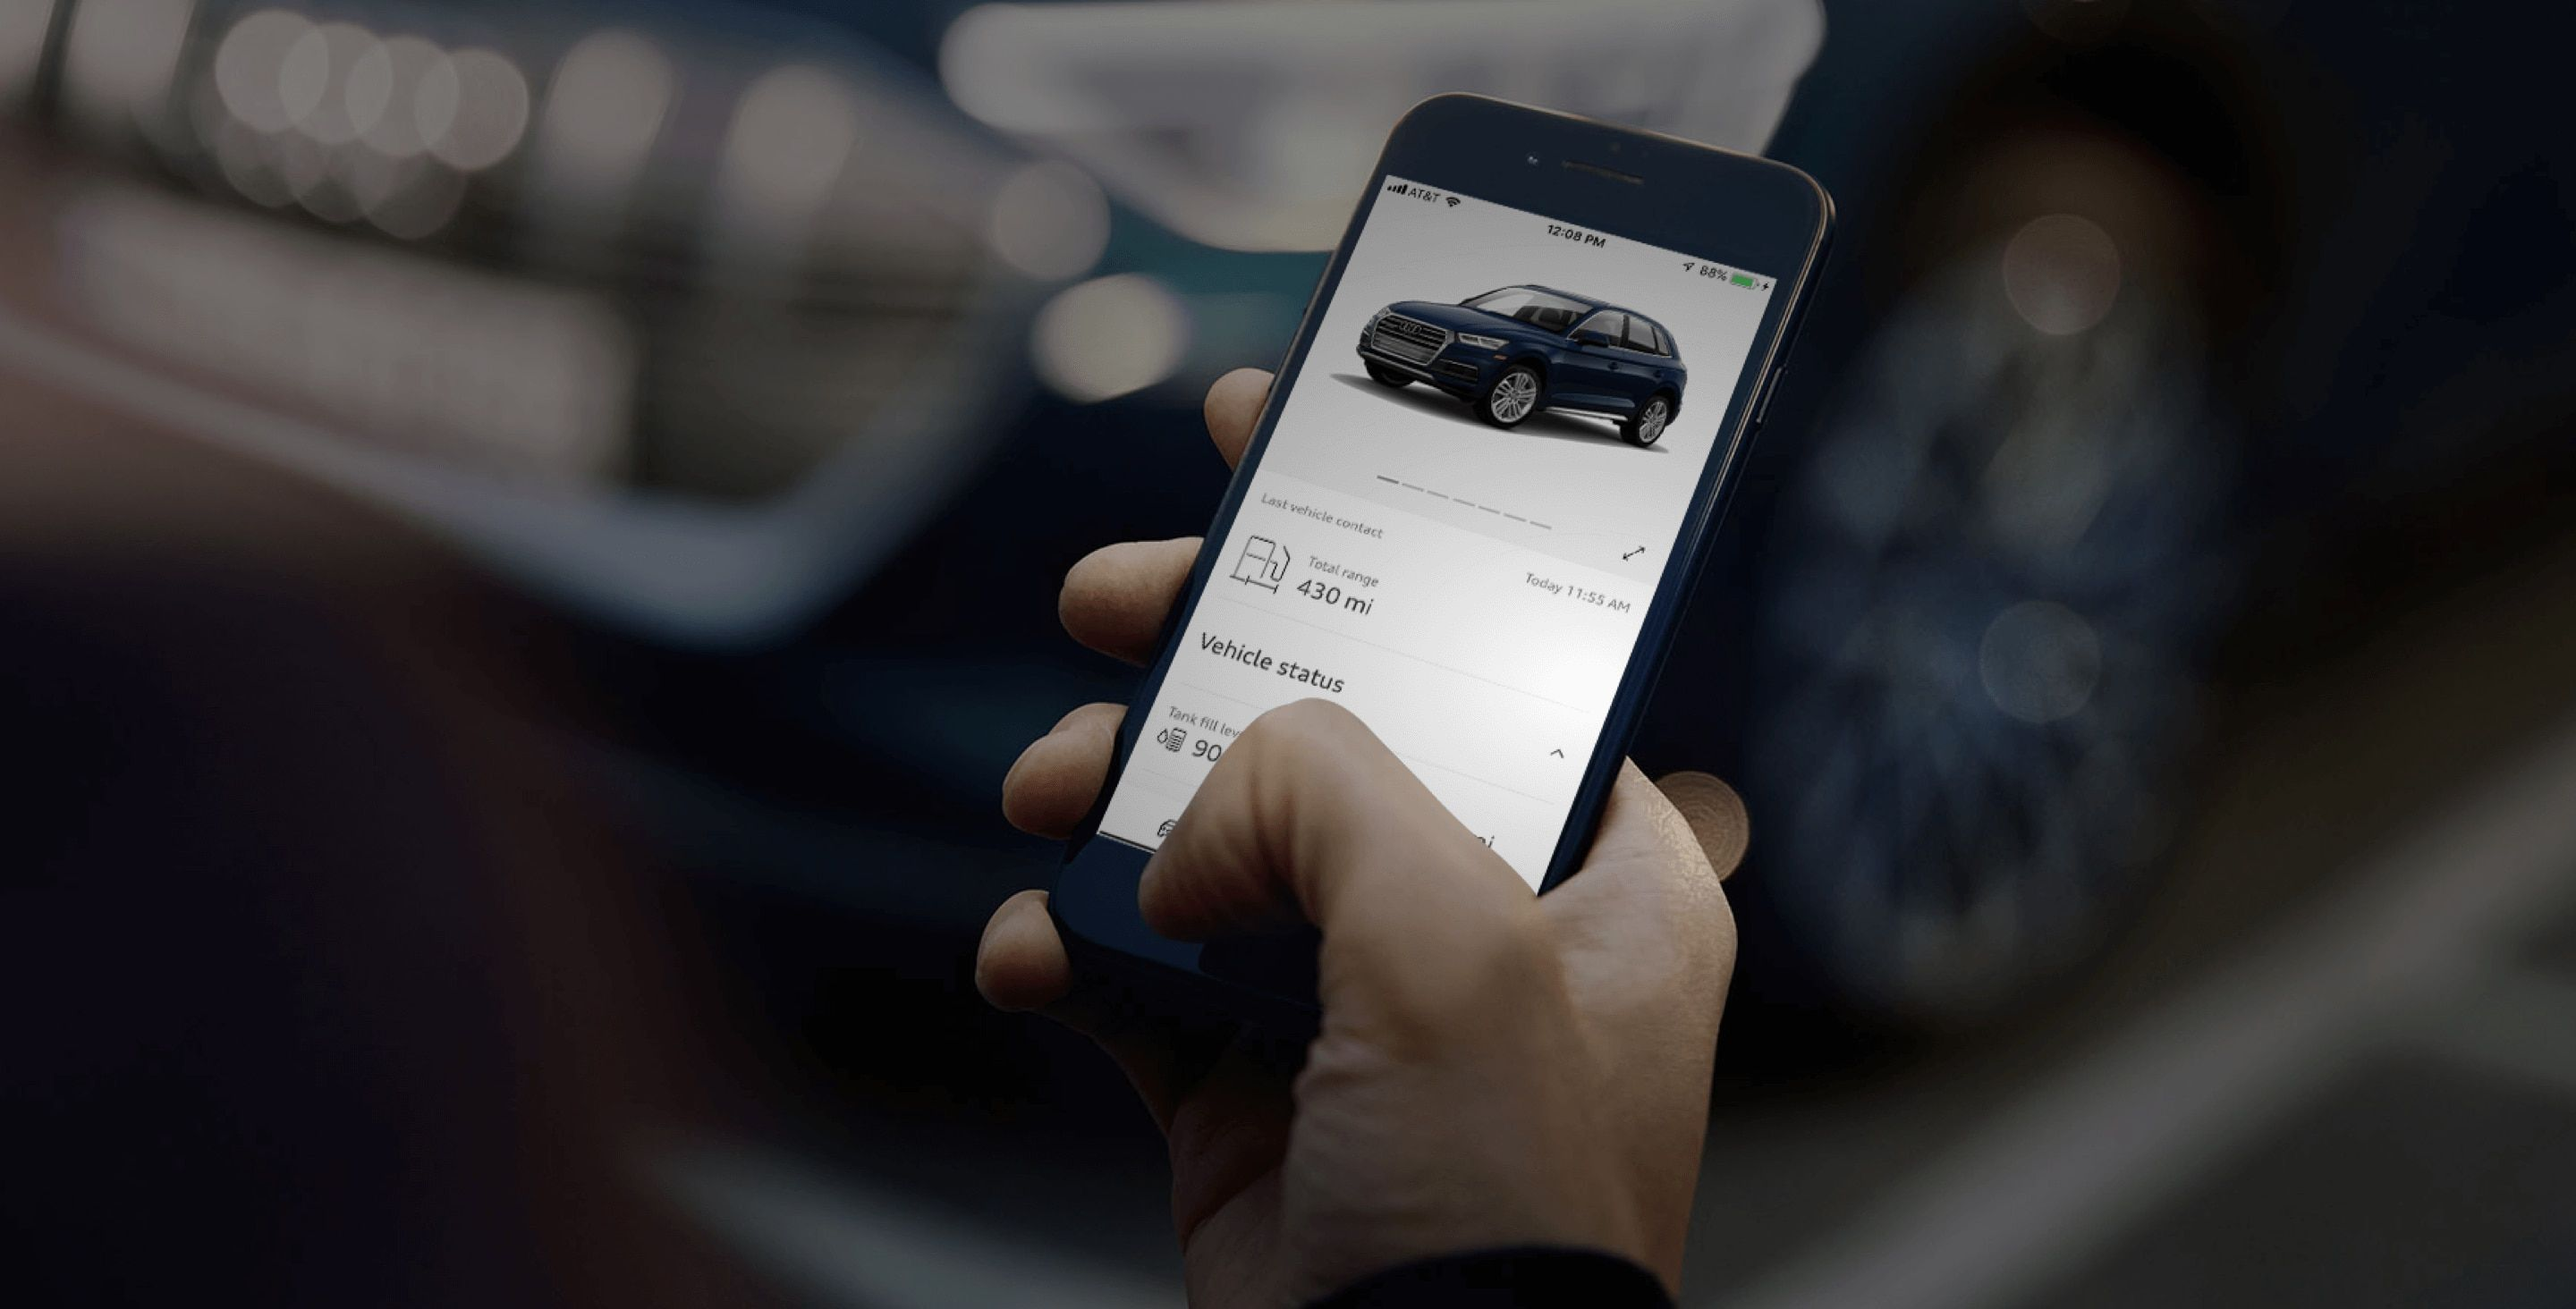 Overview of the myAudi app, demonstrating Total Range and Vehicle Status.